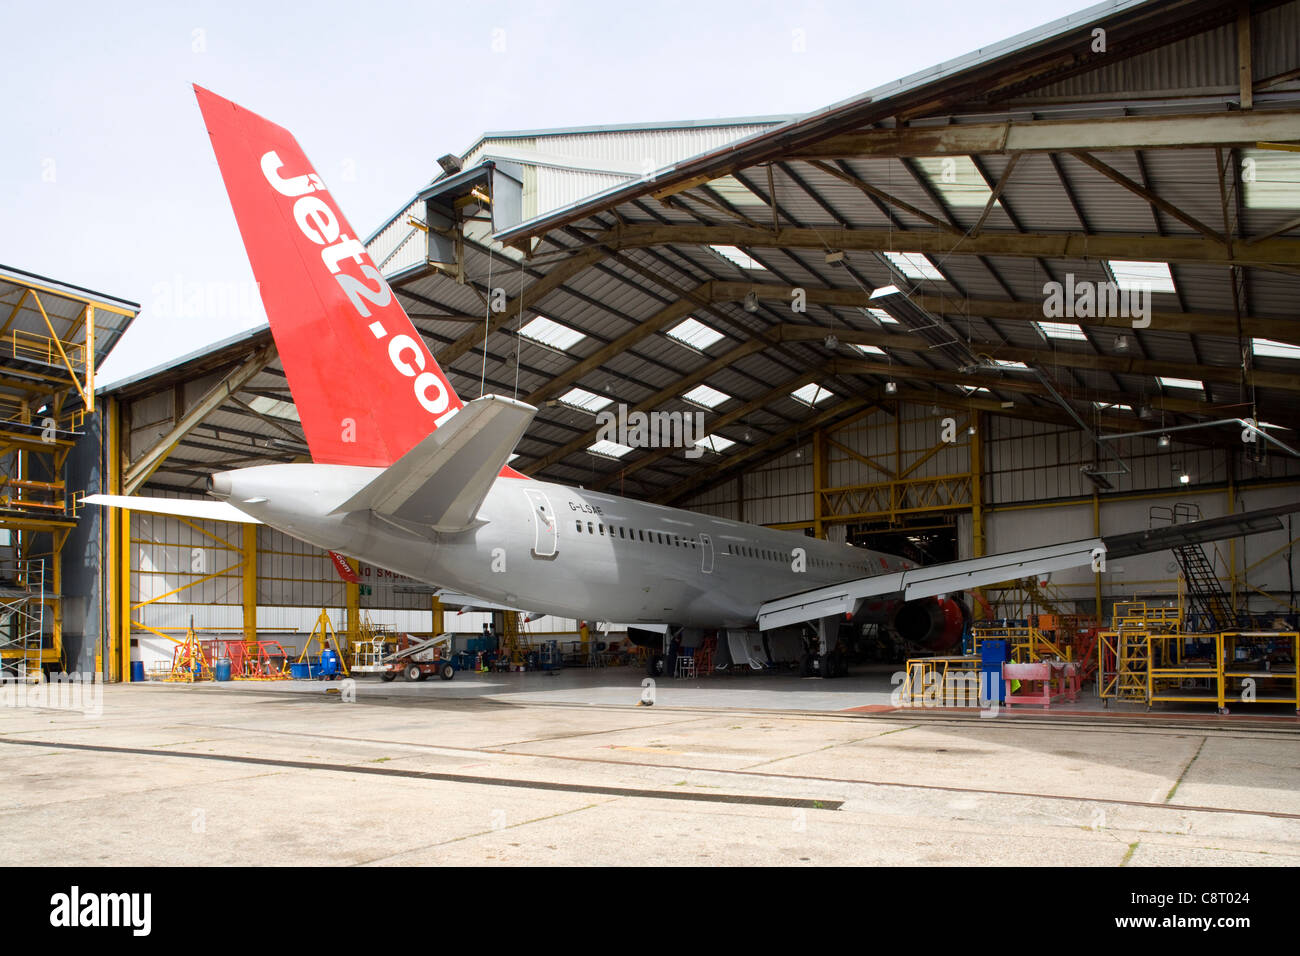 Boeing 757 in maintenance hangar with technicians in attendance - Stock Image